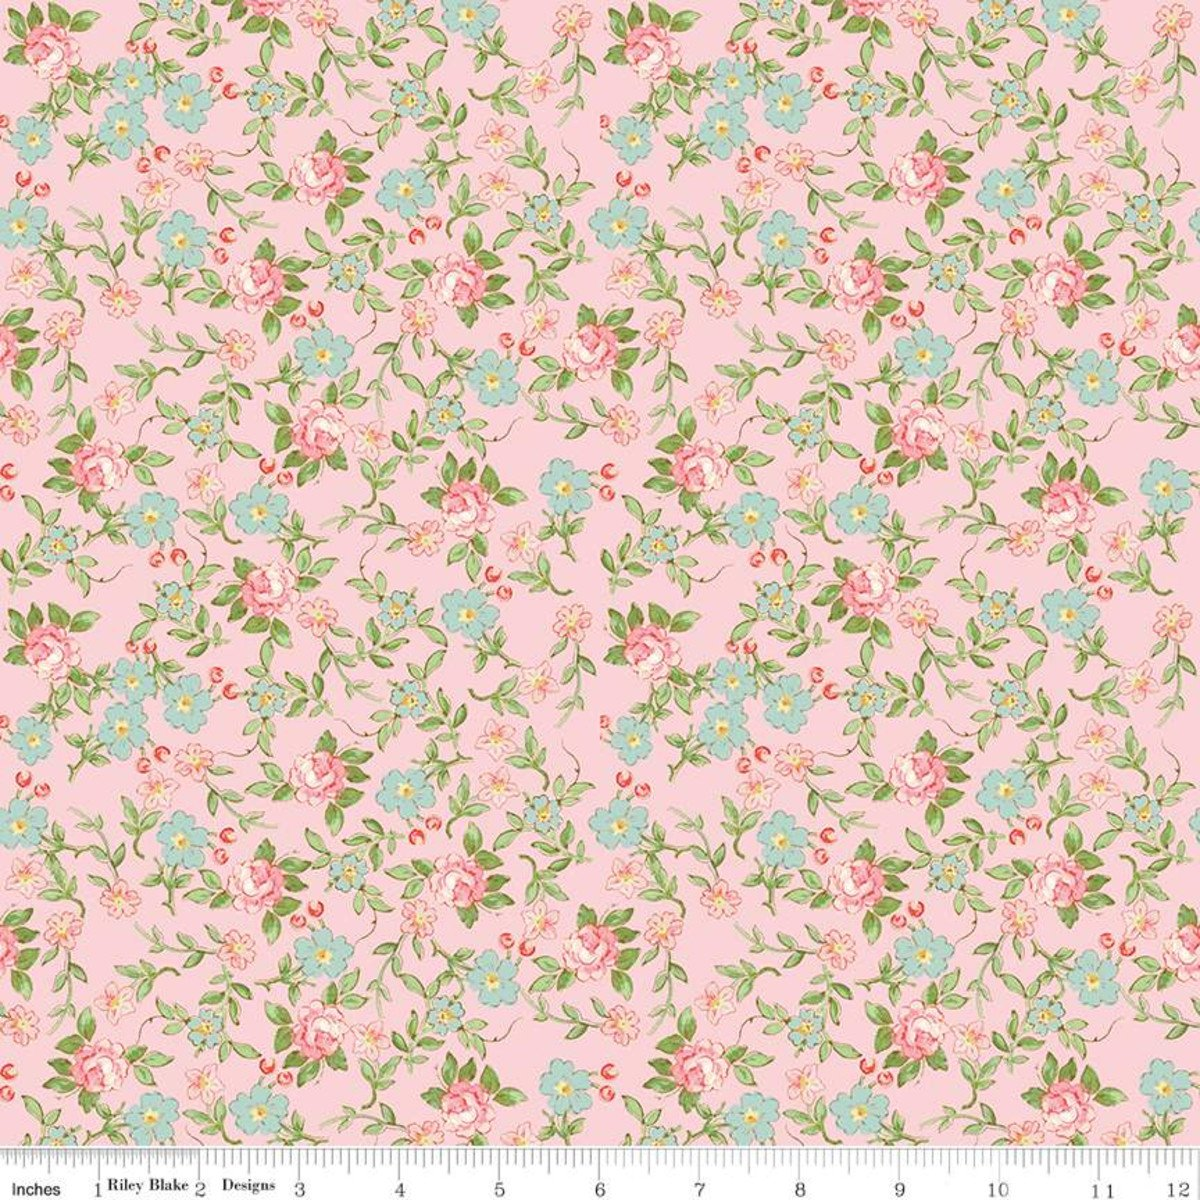 Rose & Violets Garden Sweet Blossoms Blush Fabric by Riley Blake